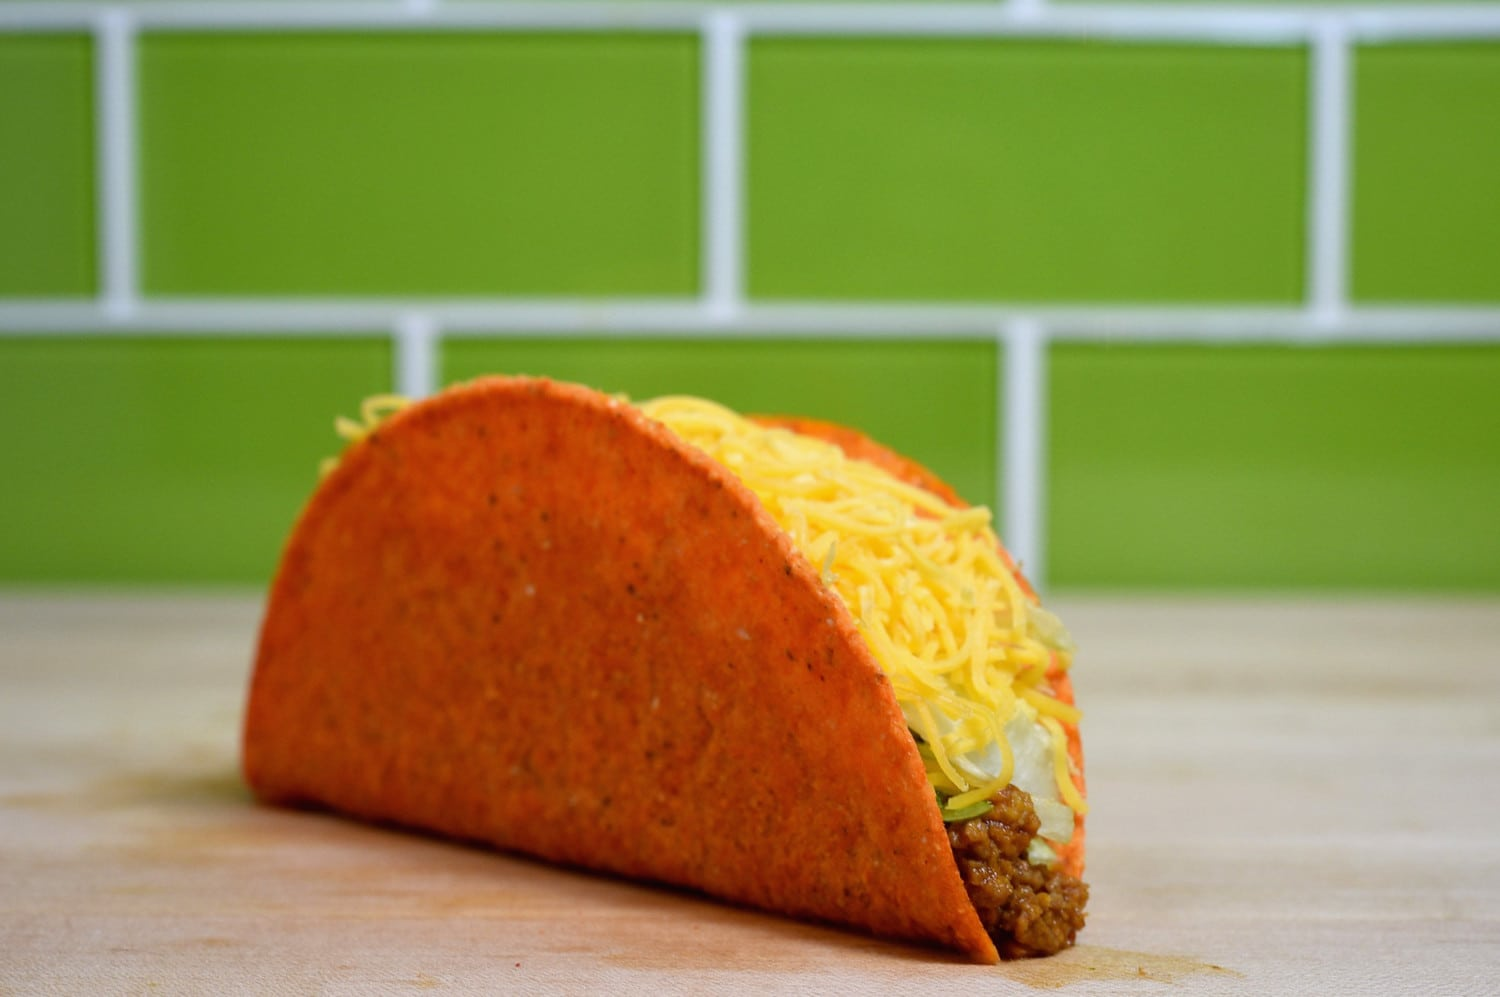 Natural Taco Bell Photo Free Doritos Locos Taco From Taco Bell On June Taco Bell Free Taco Day World Series Taco Bell Free Tacos Red Sox nice food Taco Bell Free Taco